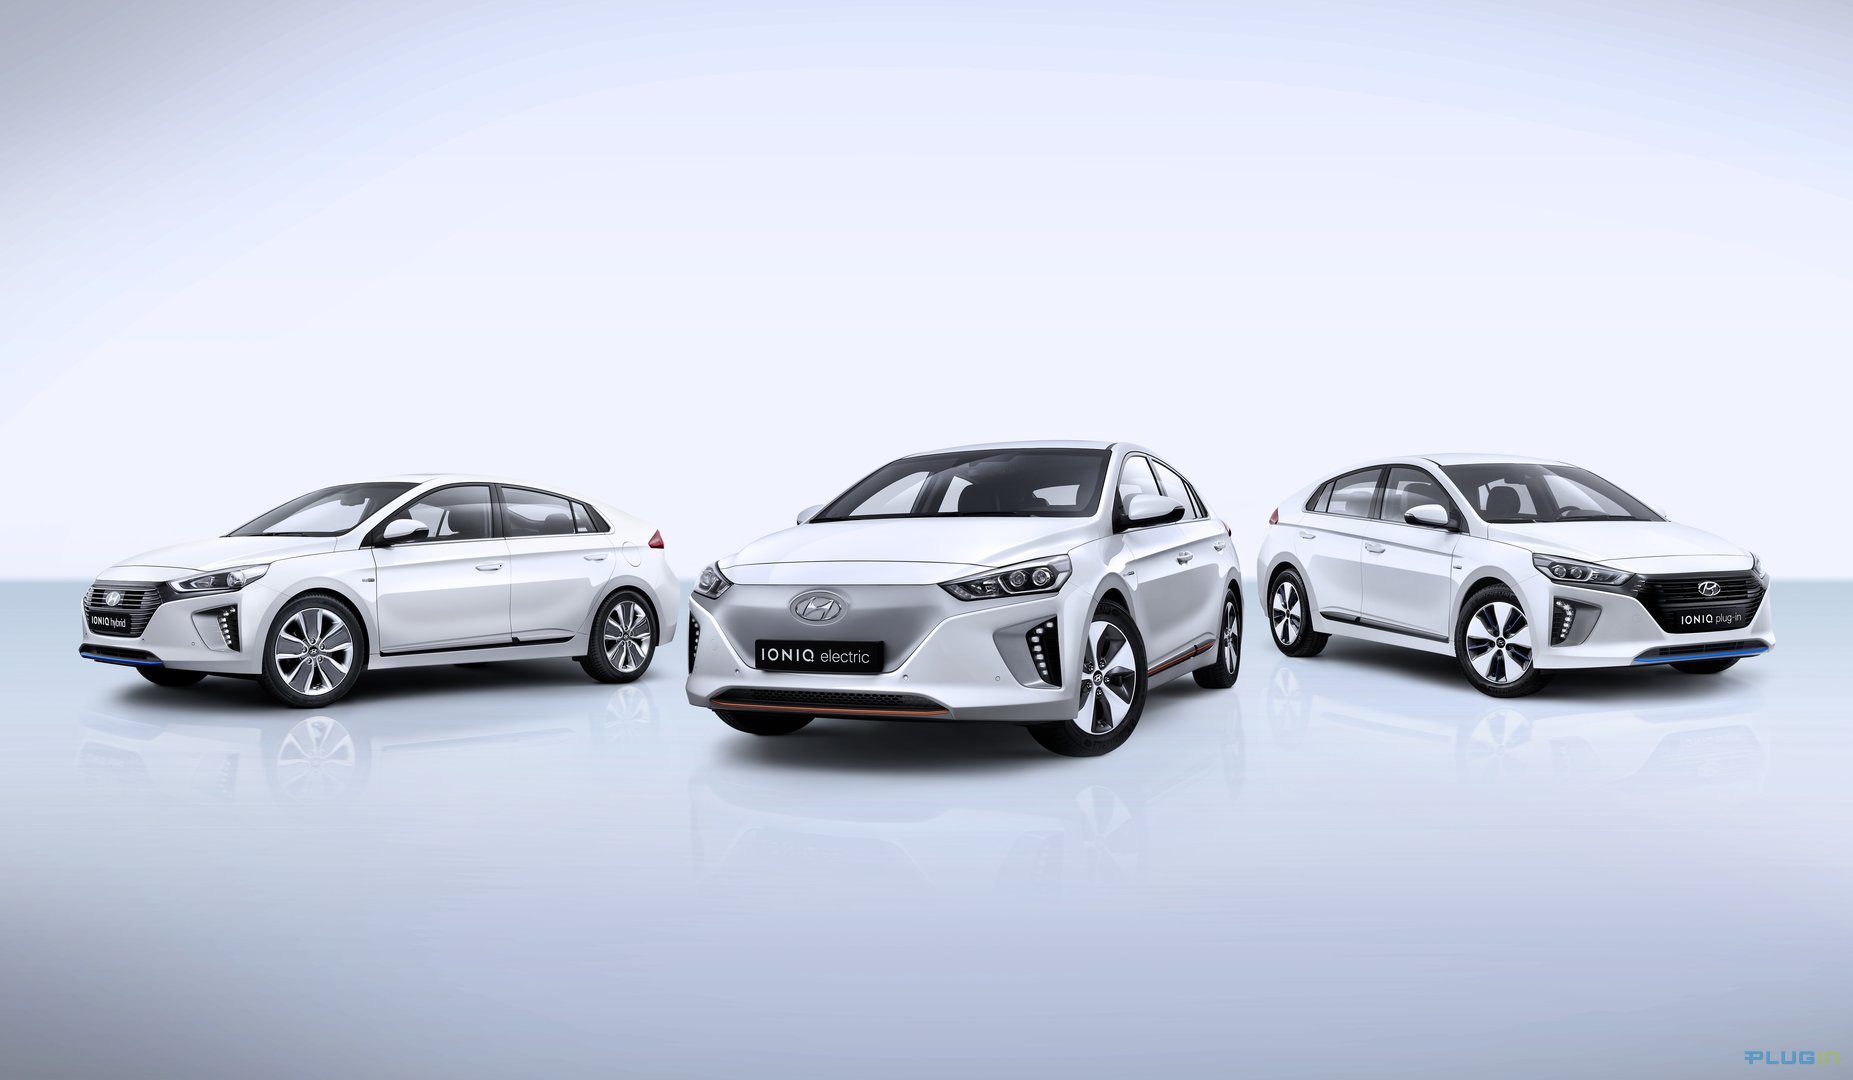 all-new-ioniq-line-up-without-logo_biggalleryimage